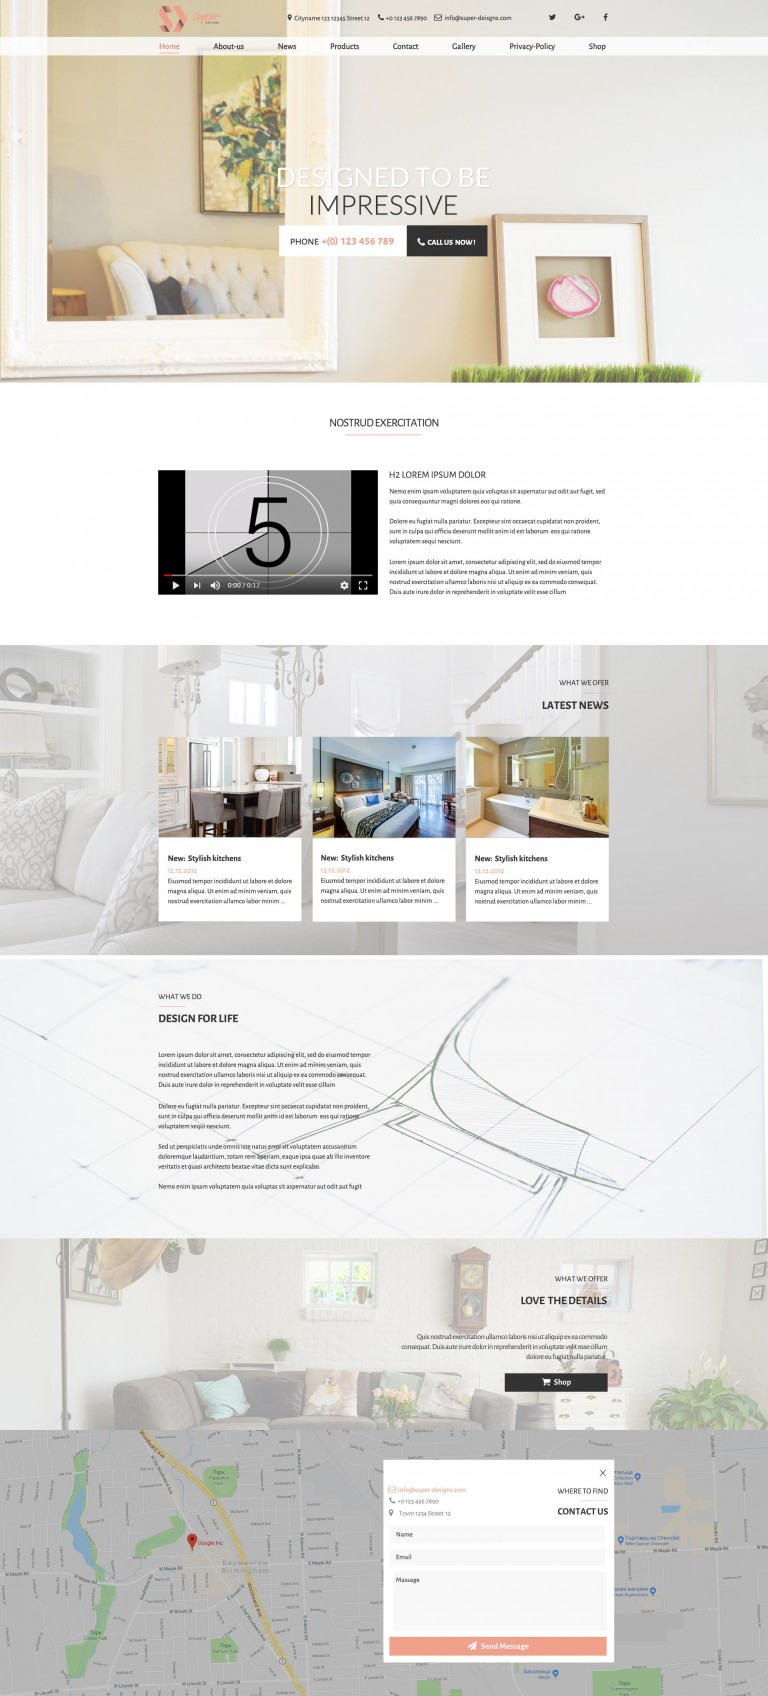 Impressive design FURNITURE PSD template